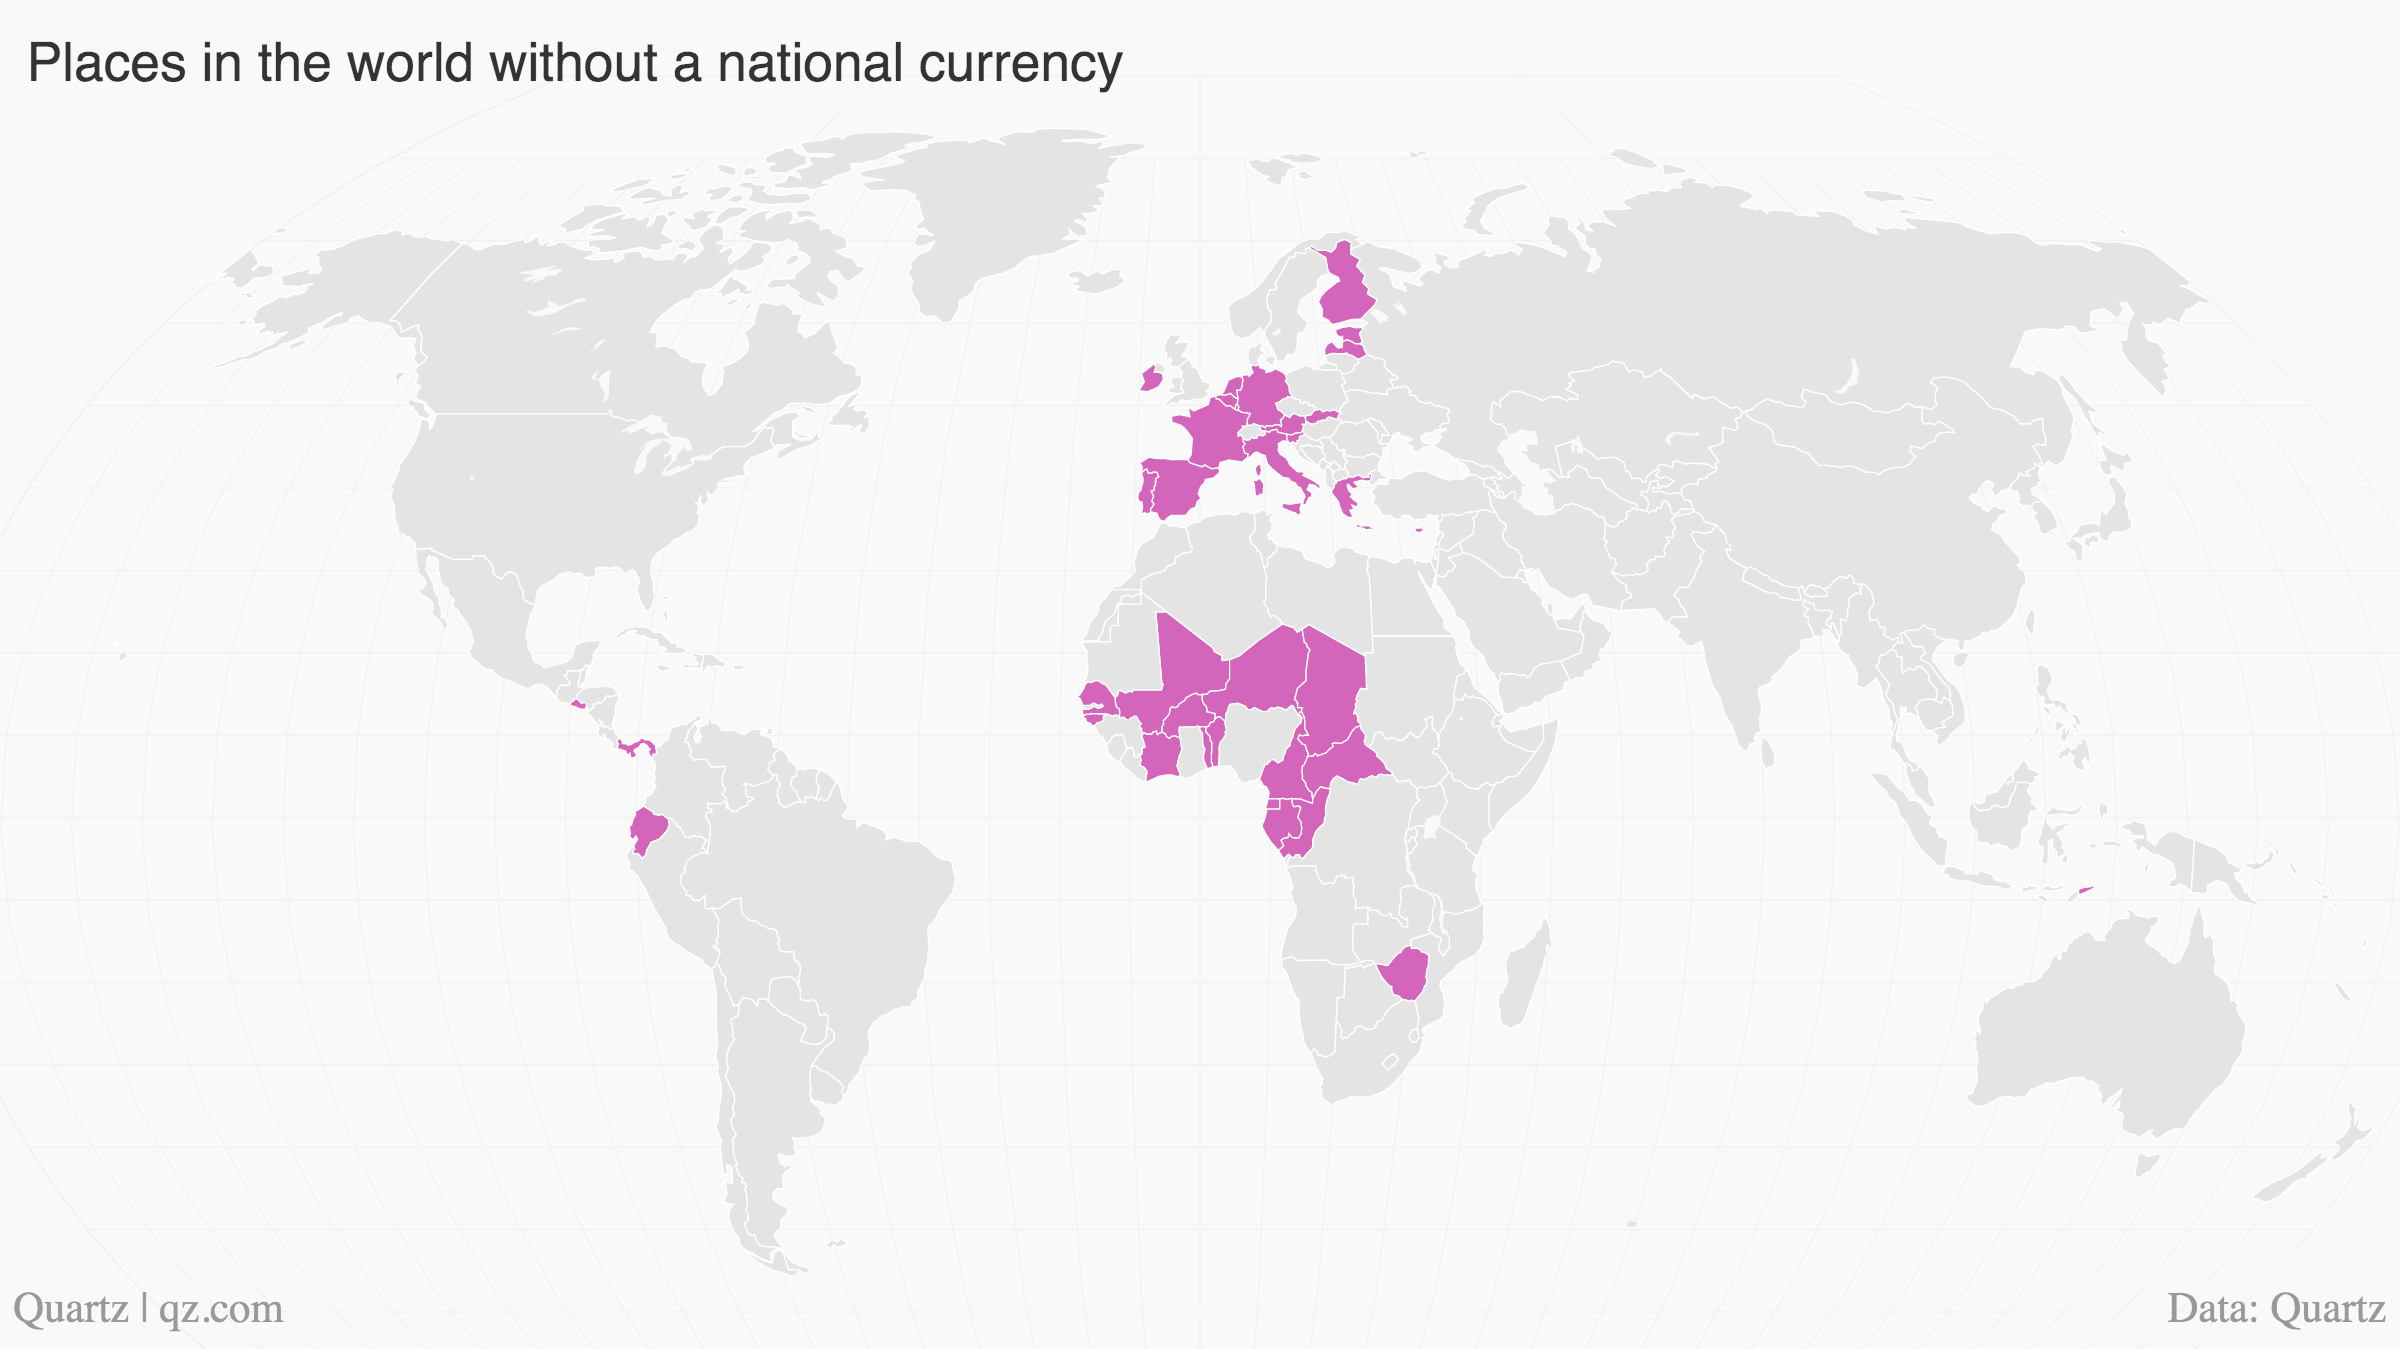 Map Of The World Without Countries.Here Are All The Countries That Don T Have A Currency Of Their Own